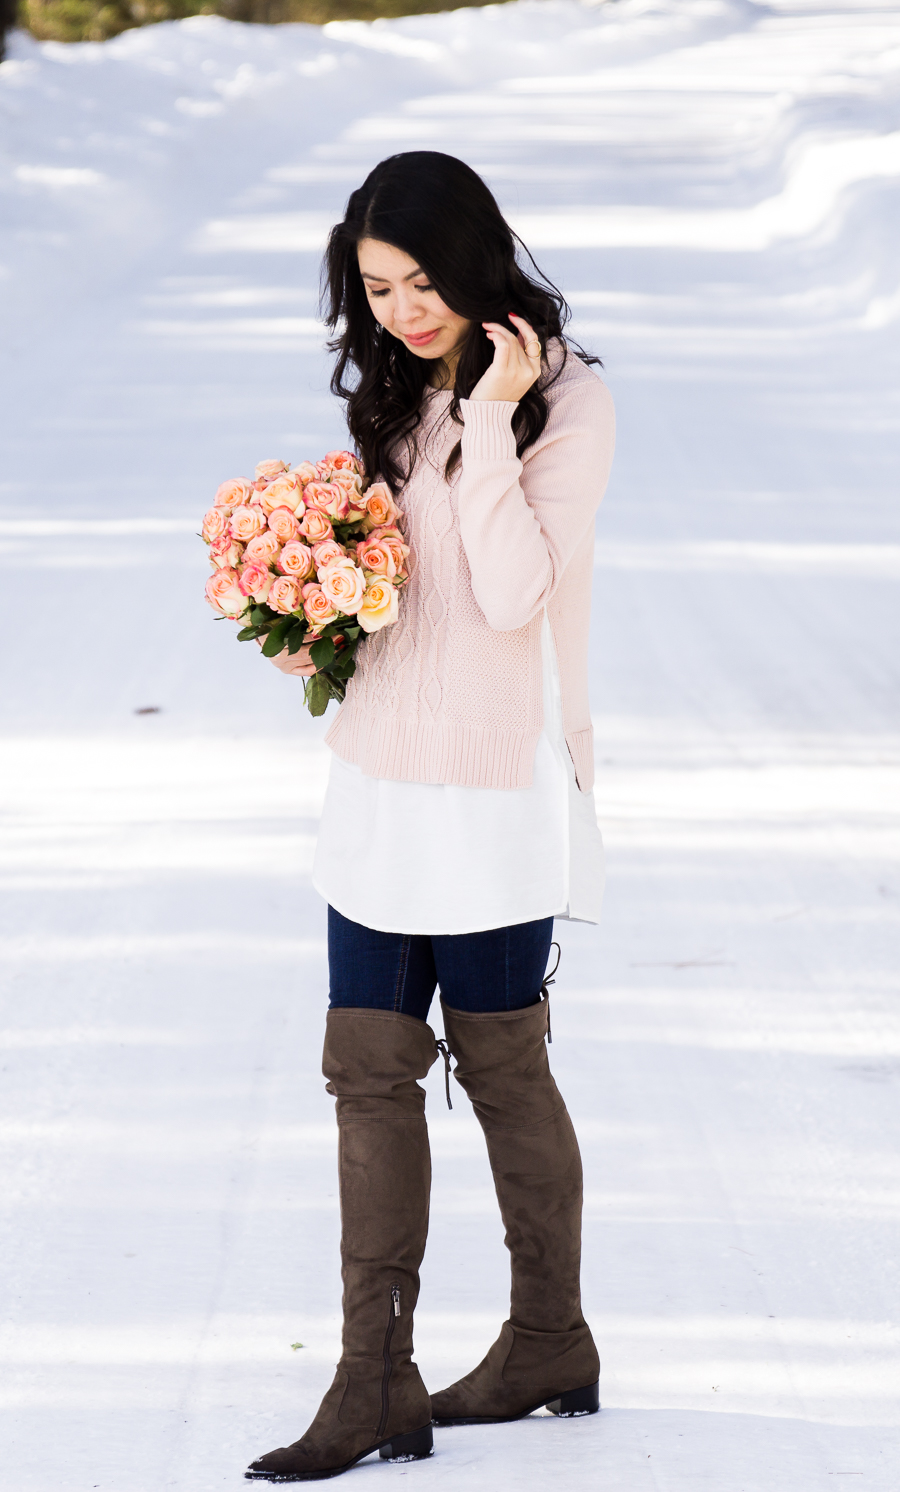 Cable knit sweater, pointed toe over the knee boots, cute casual winter outfit, Suncadia Resort with snow, petite fashion blog